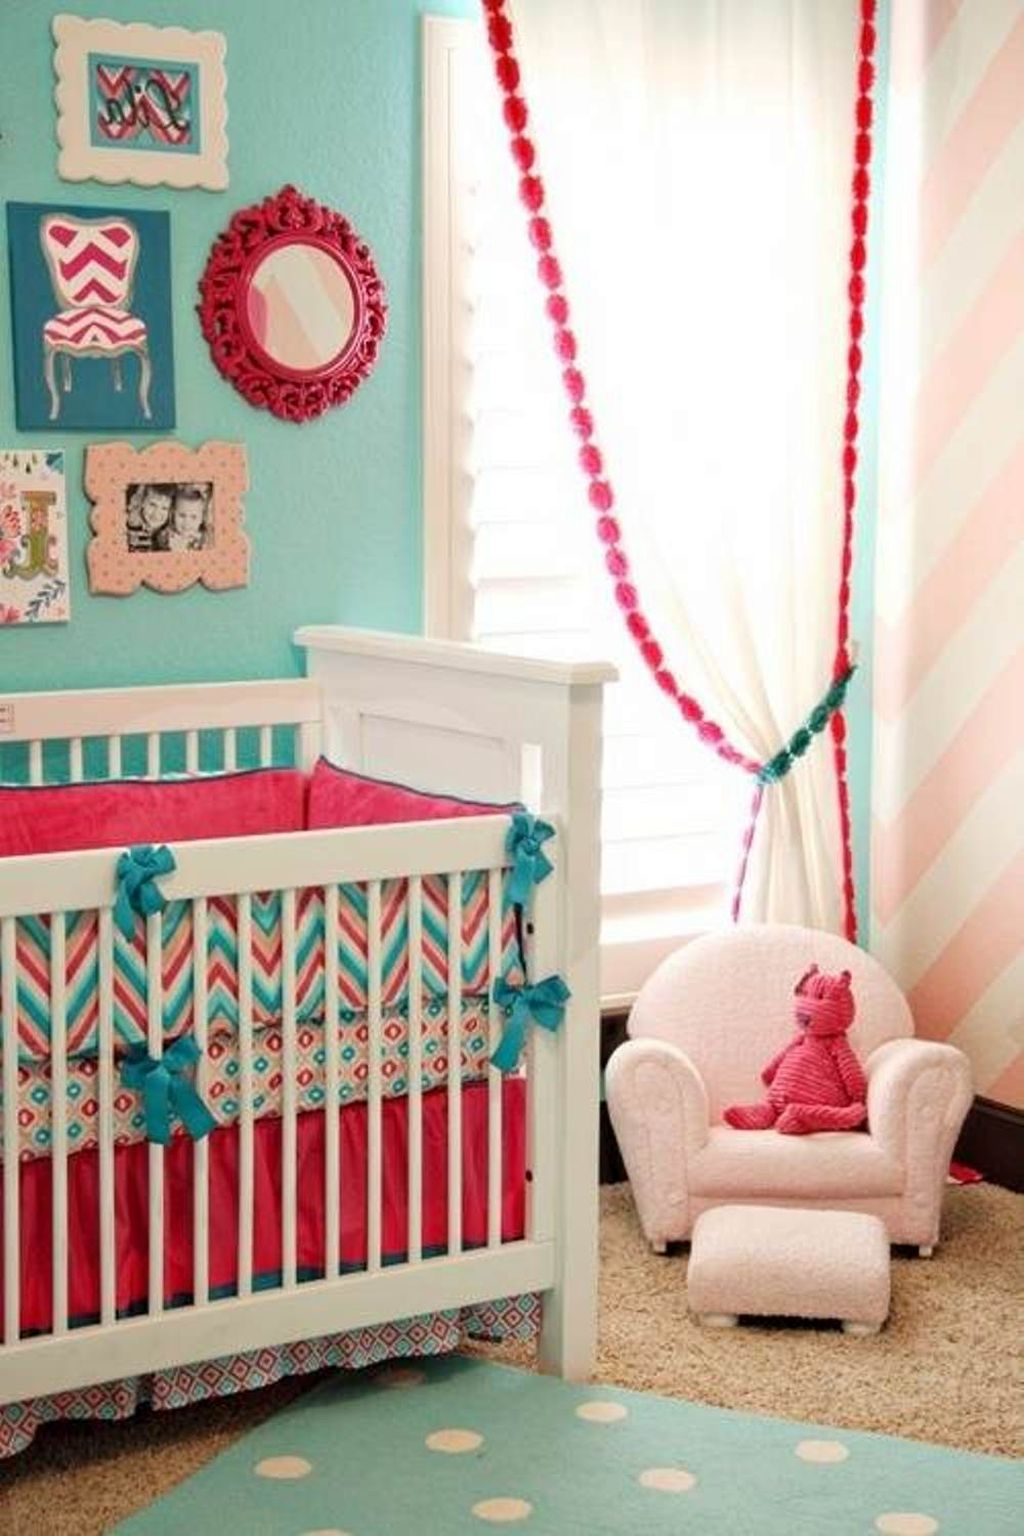 Bedroom Colors For Baby Girl: 20 Cute Baby Girl Bedding Ideas For Your Little Angel